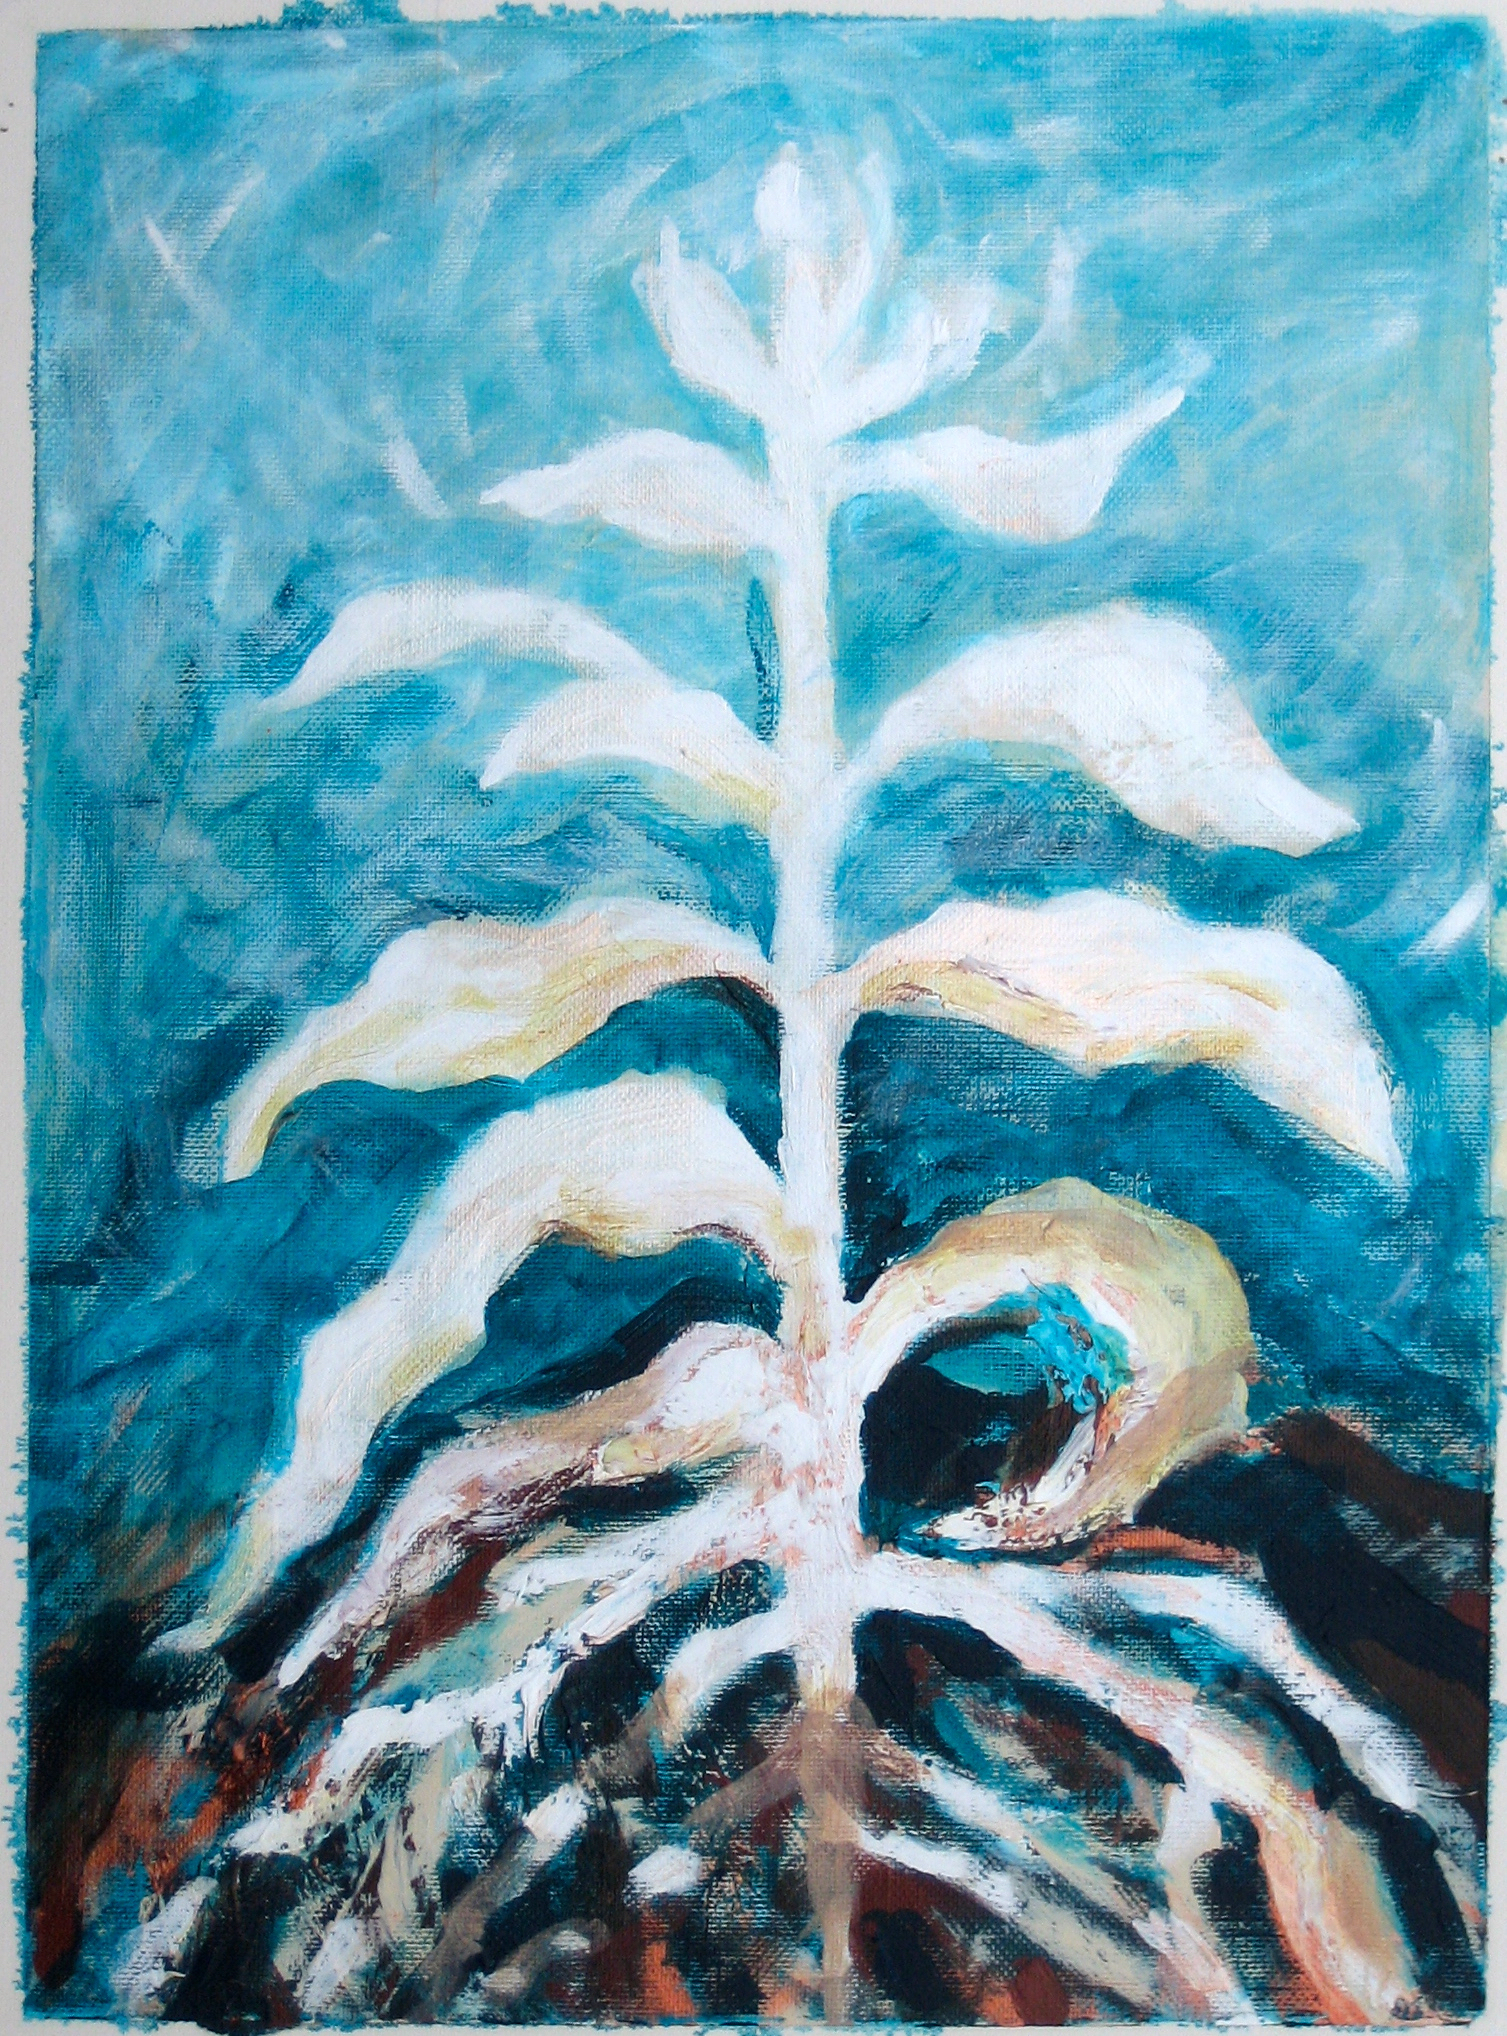 sixth Transformation of Archetypal Plant  acrylic on paper 18in x 24in